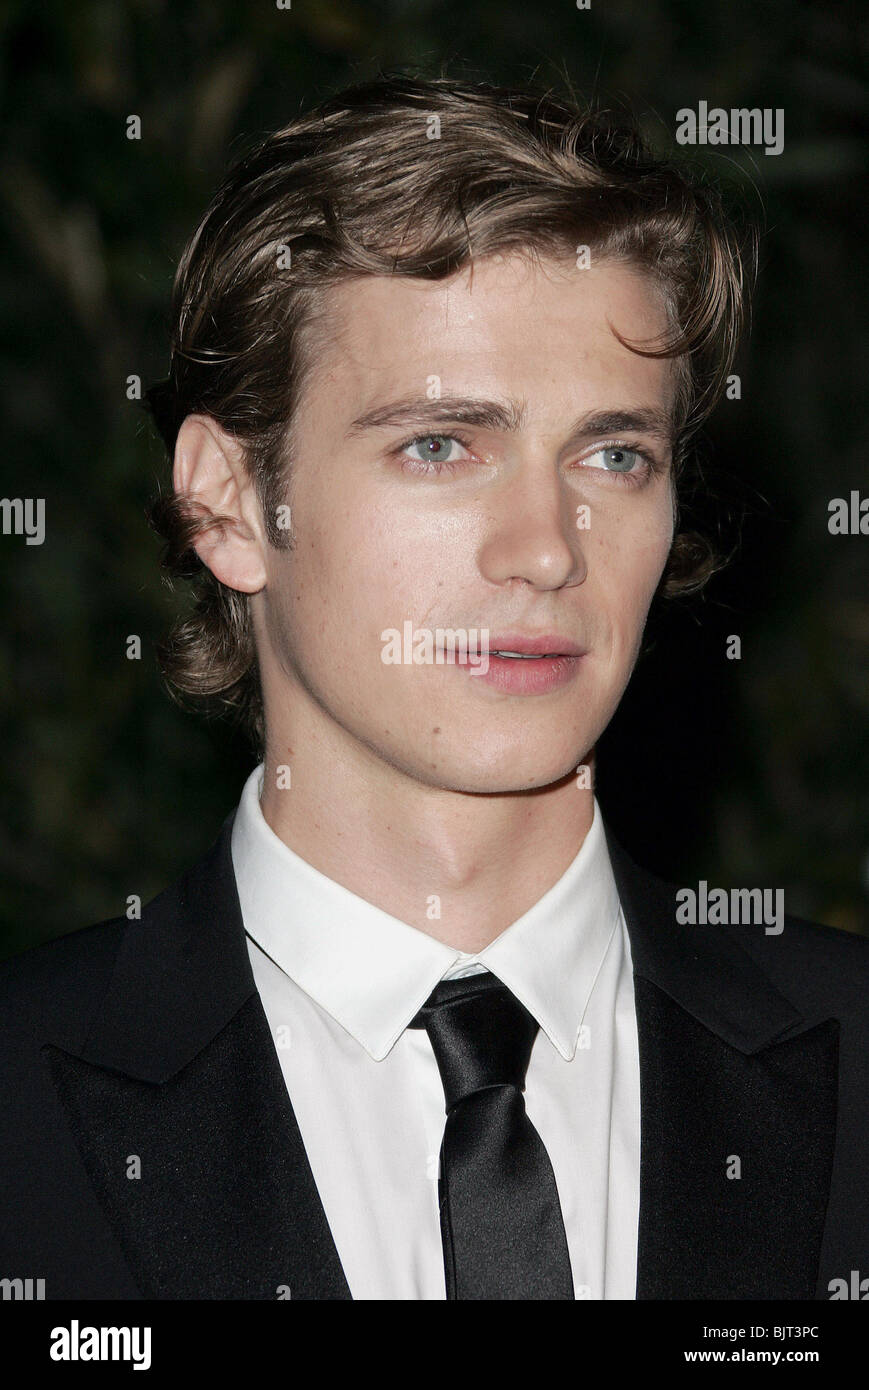 Hayden Christensen Cannes Film Festival 2005 Cannes France 16 May Stock Photo Alamy